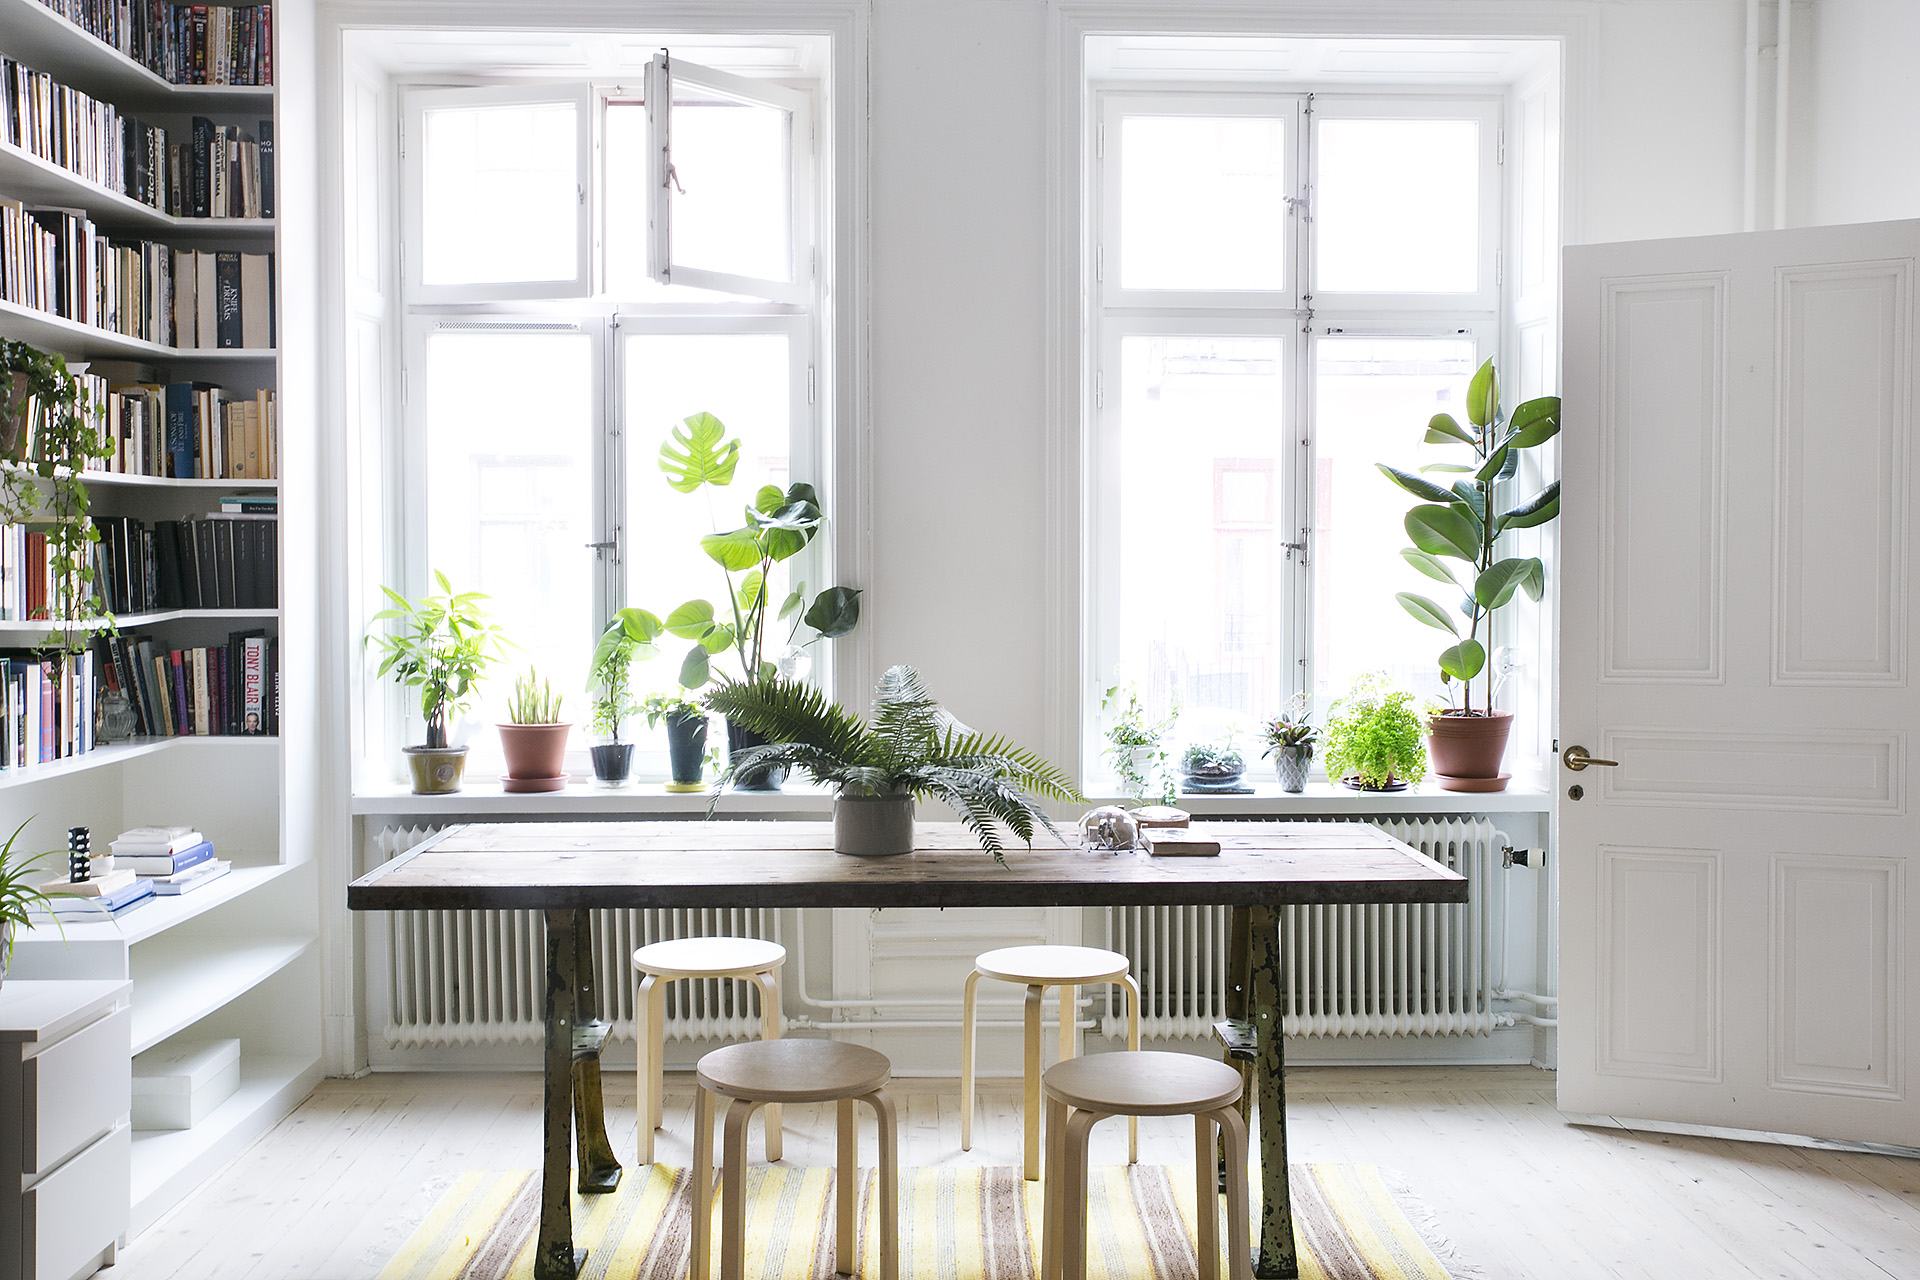 Apartment plants living rooms: images about living room on ...